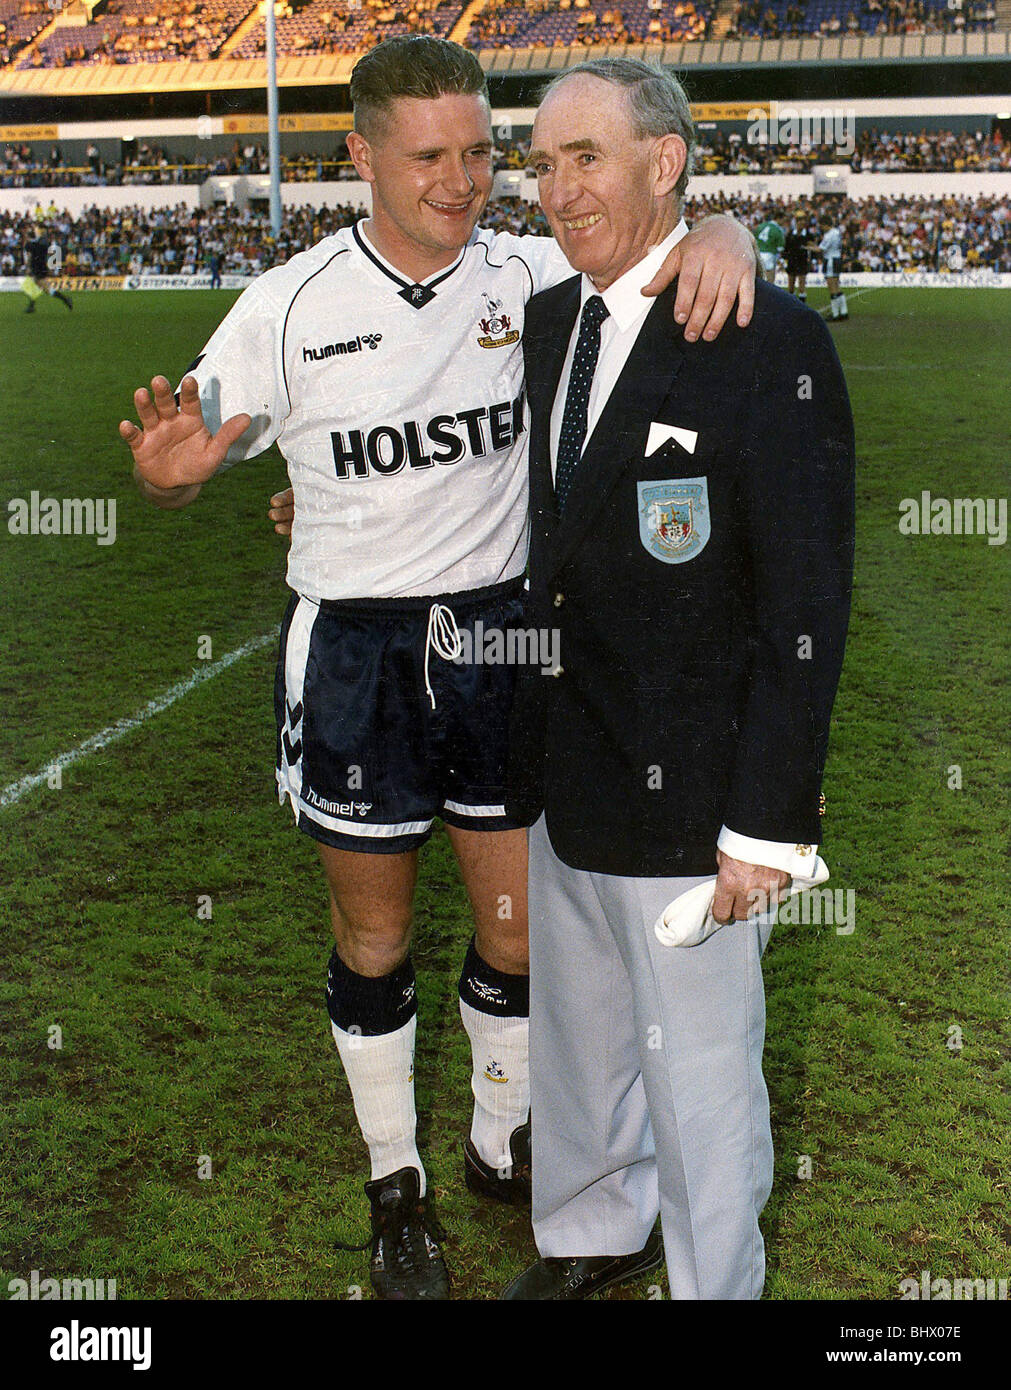 Danny Blanchflower right who played for Tottenham FC with Paul